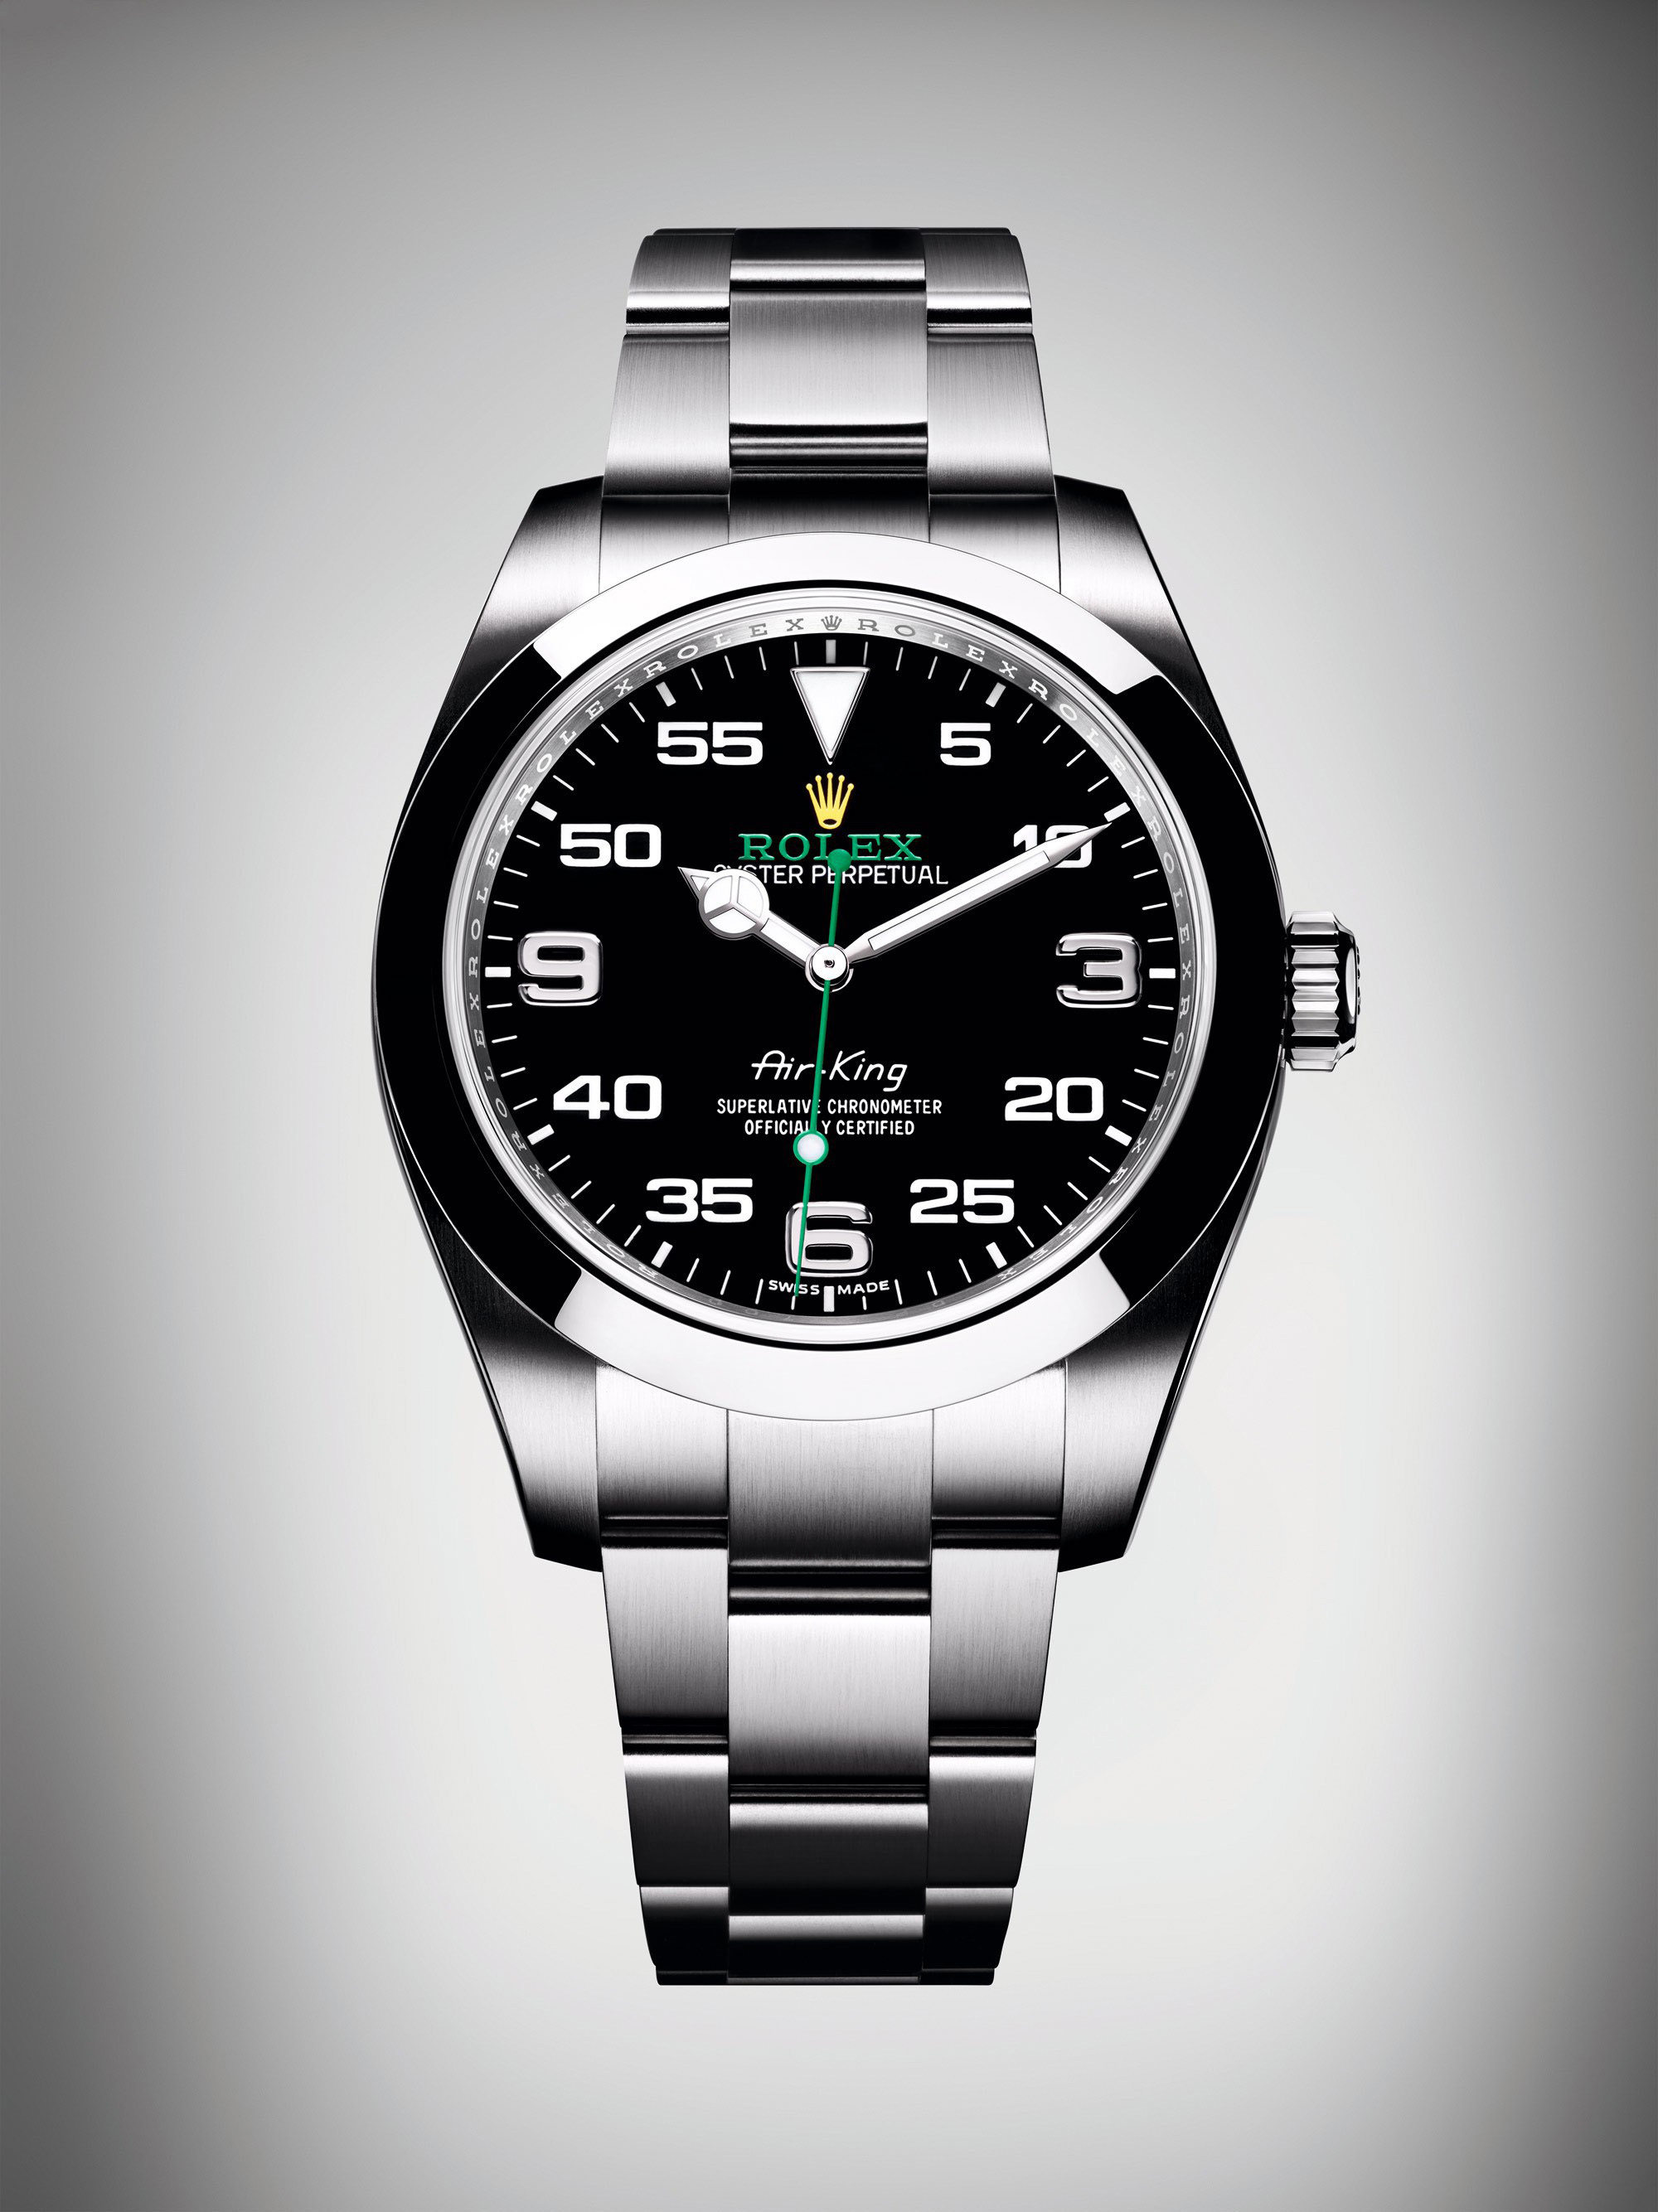 rolex air king 116900 discontinued 2020 - Rolex Baselworld 2020 - Rolex 2020 Predictions